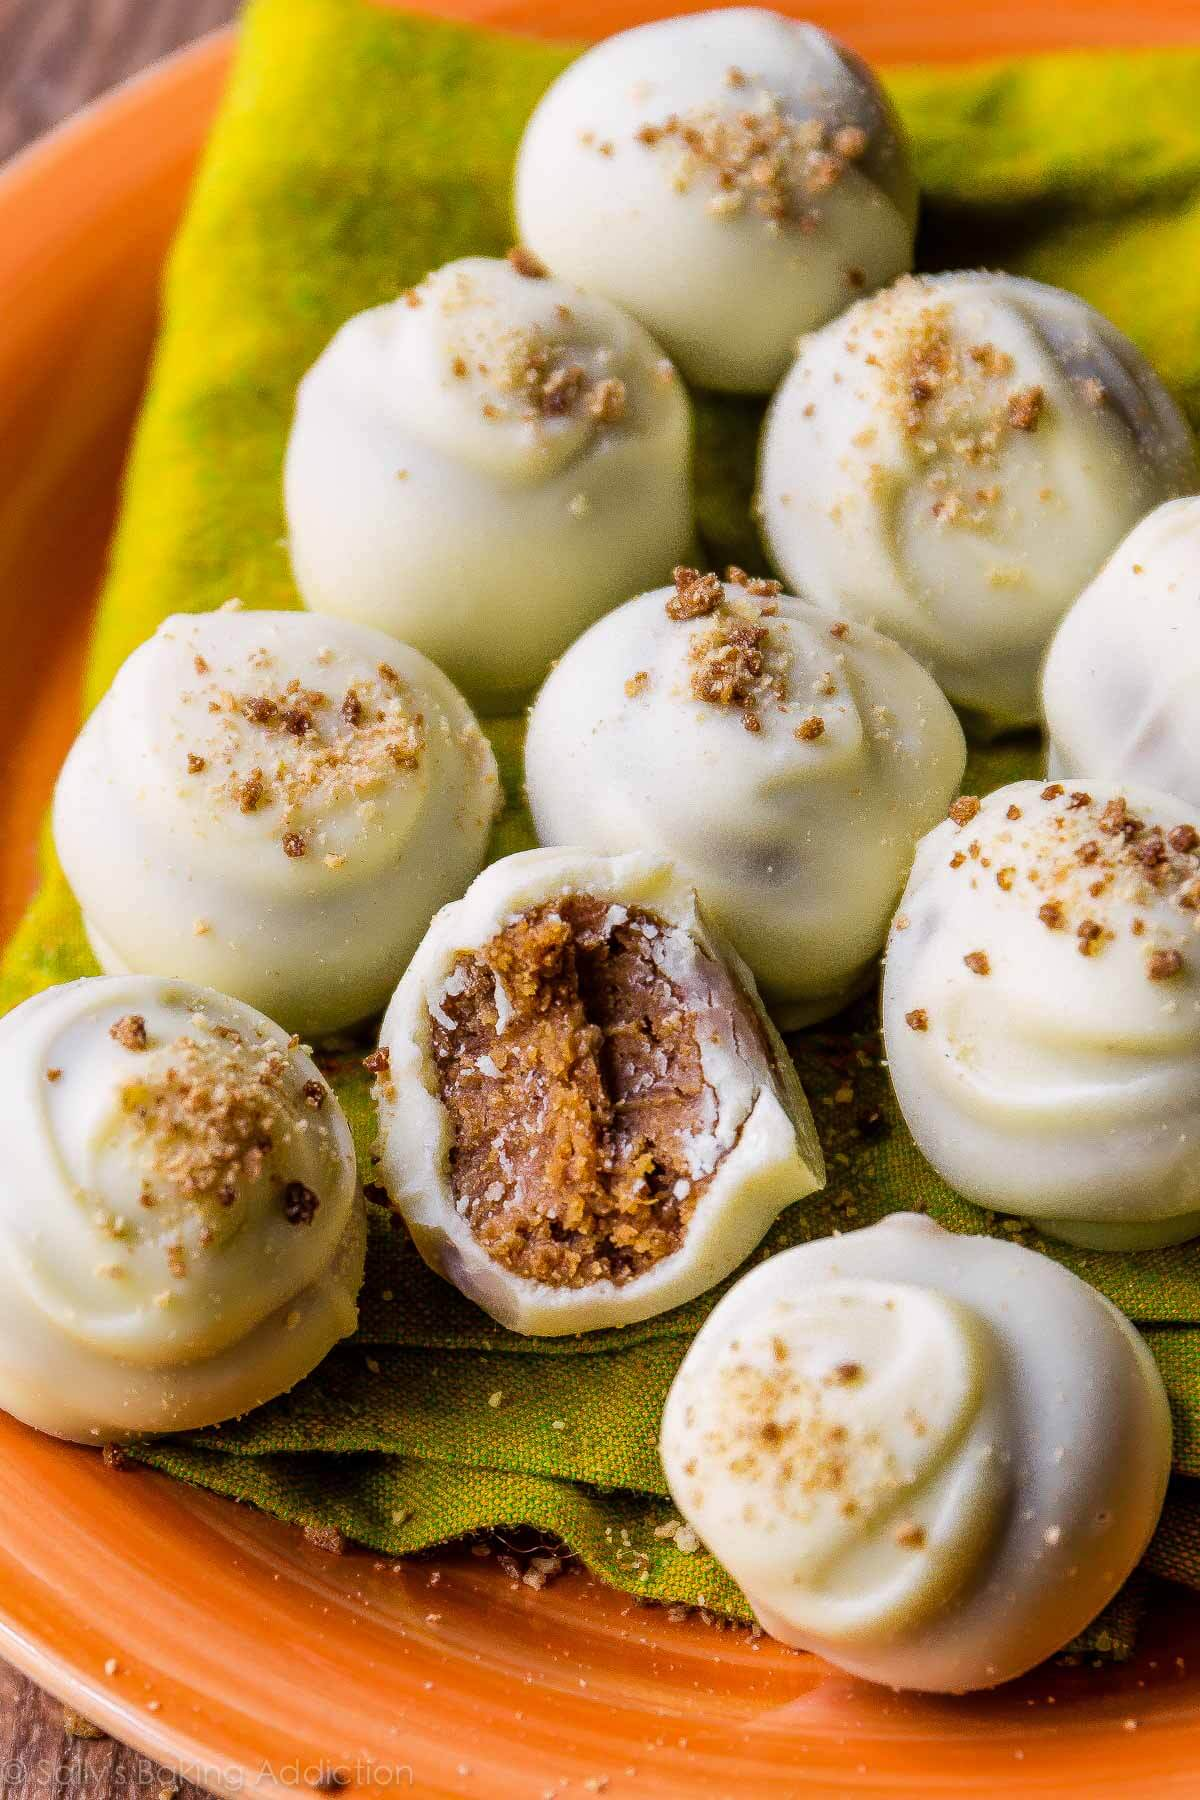 For the best Fall treat, make these pumpkin spice truffles-- they're surprisingly easy and can be coated in white or dark chocolate! Recipe on sallysbakingaddiction.com